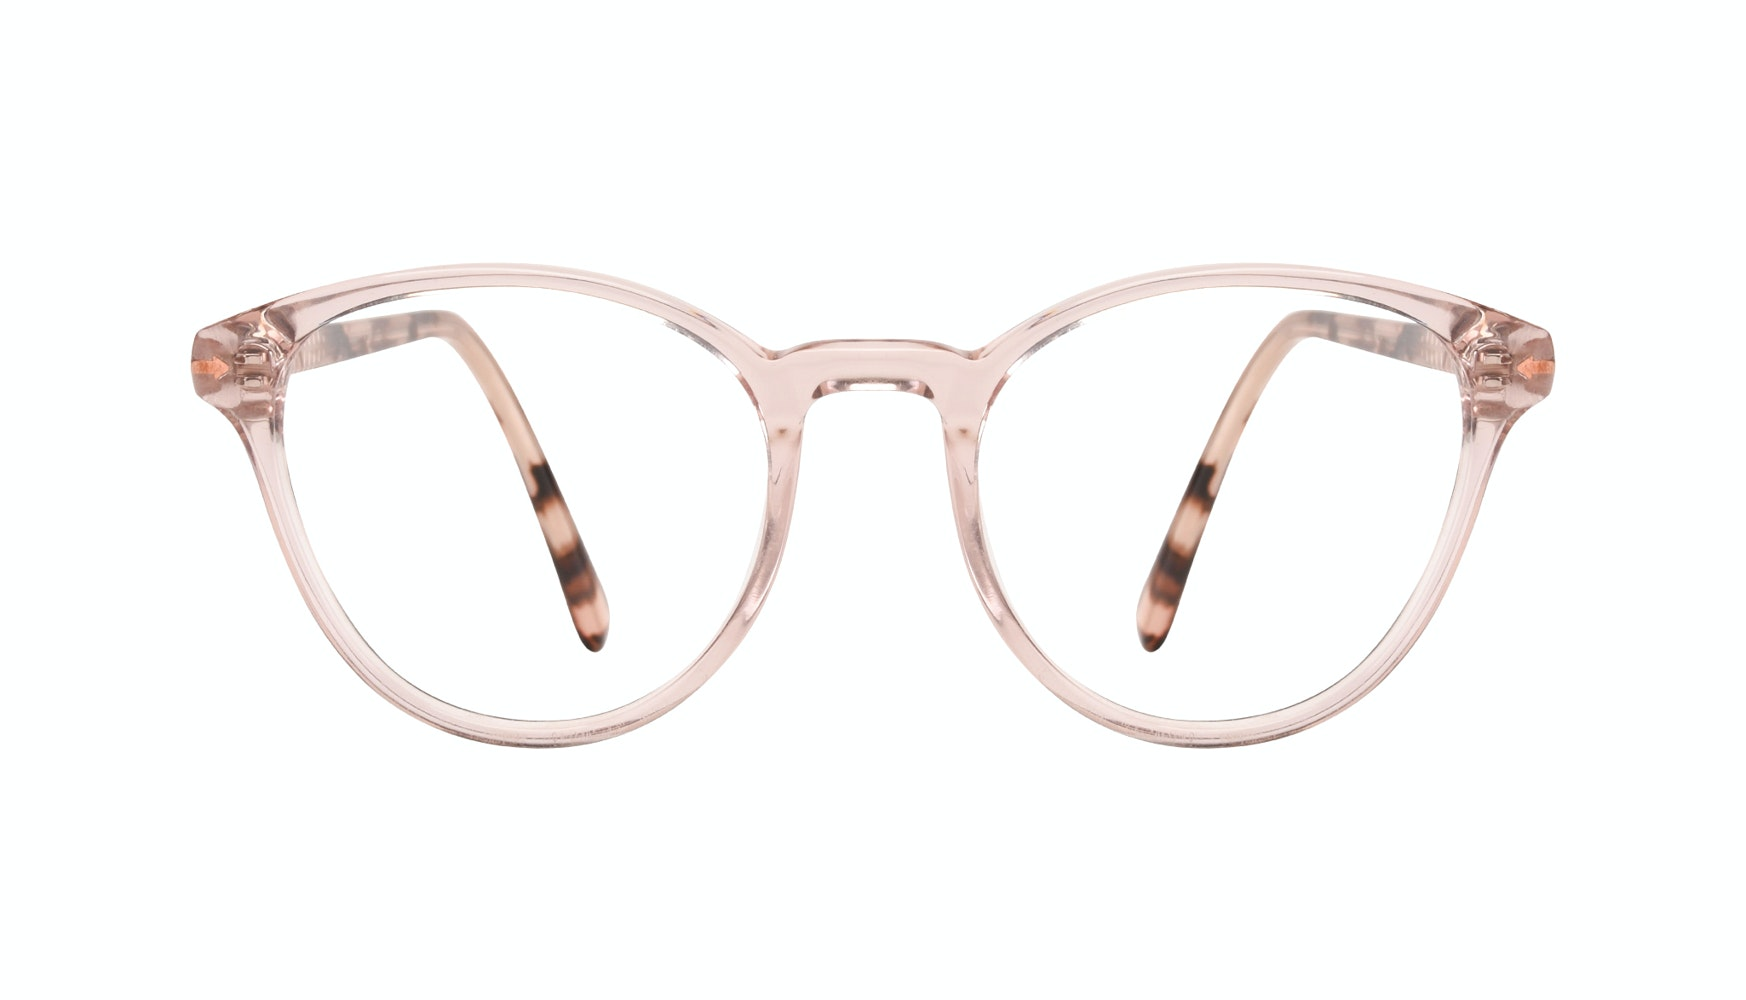 Affordable Fashion Glasses Round Eyeglasses Women London Blush